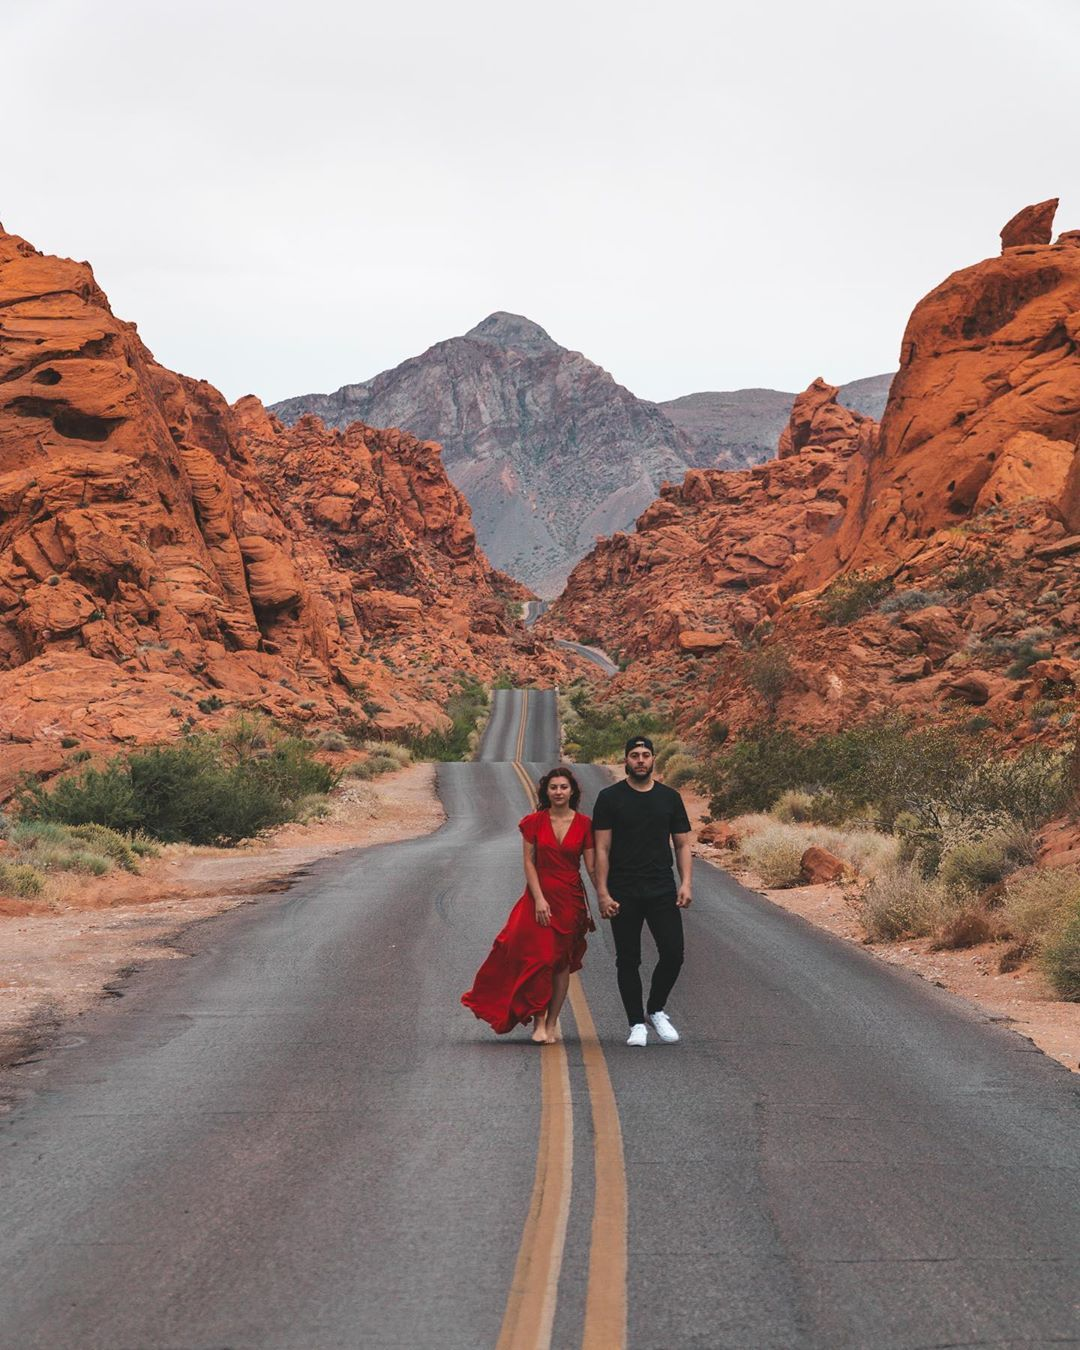 Exploring the famous Mouse Tank Road in Valley of Fire